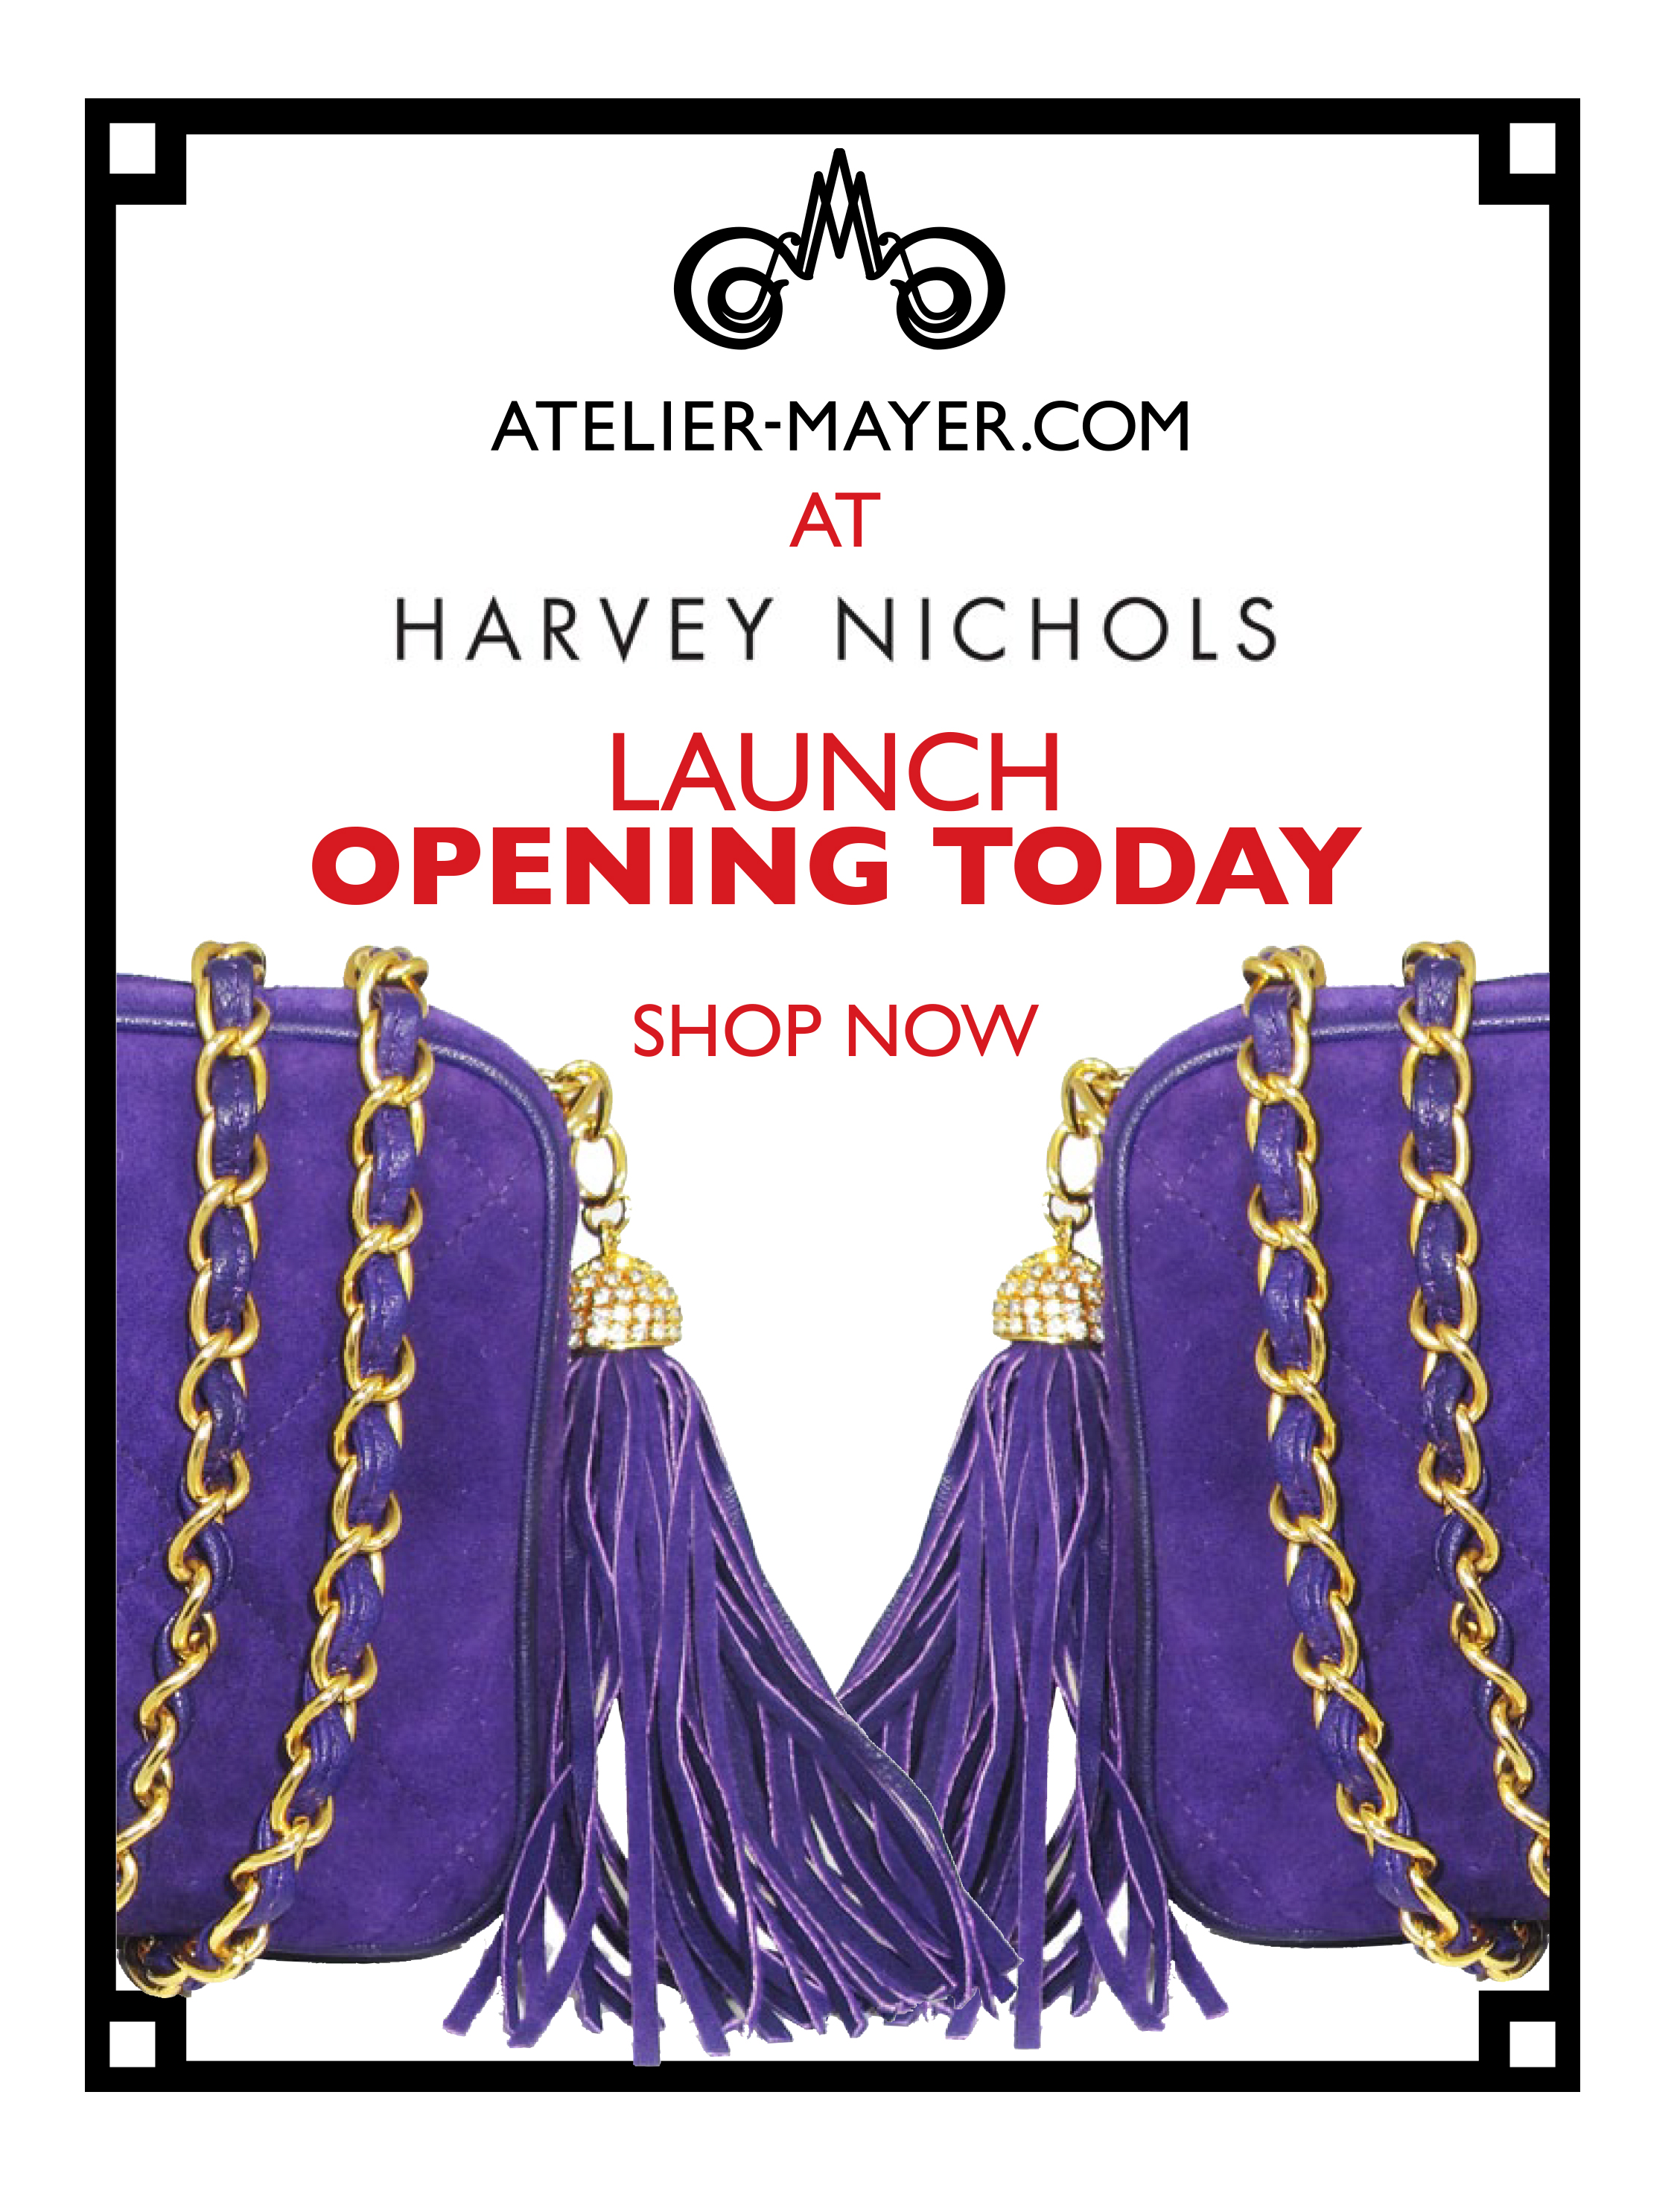 harvey nichols email final.jpg